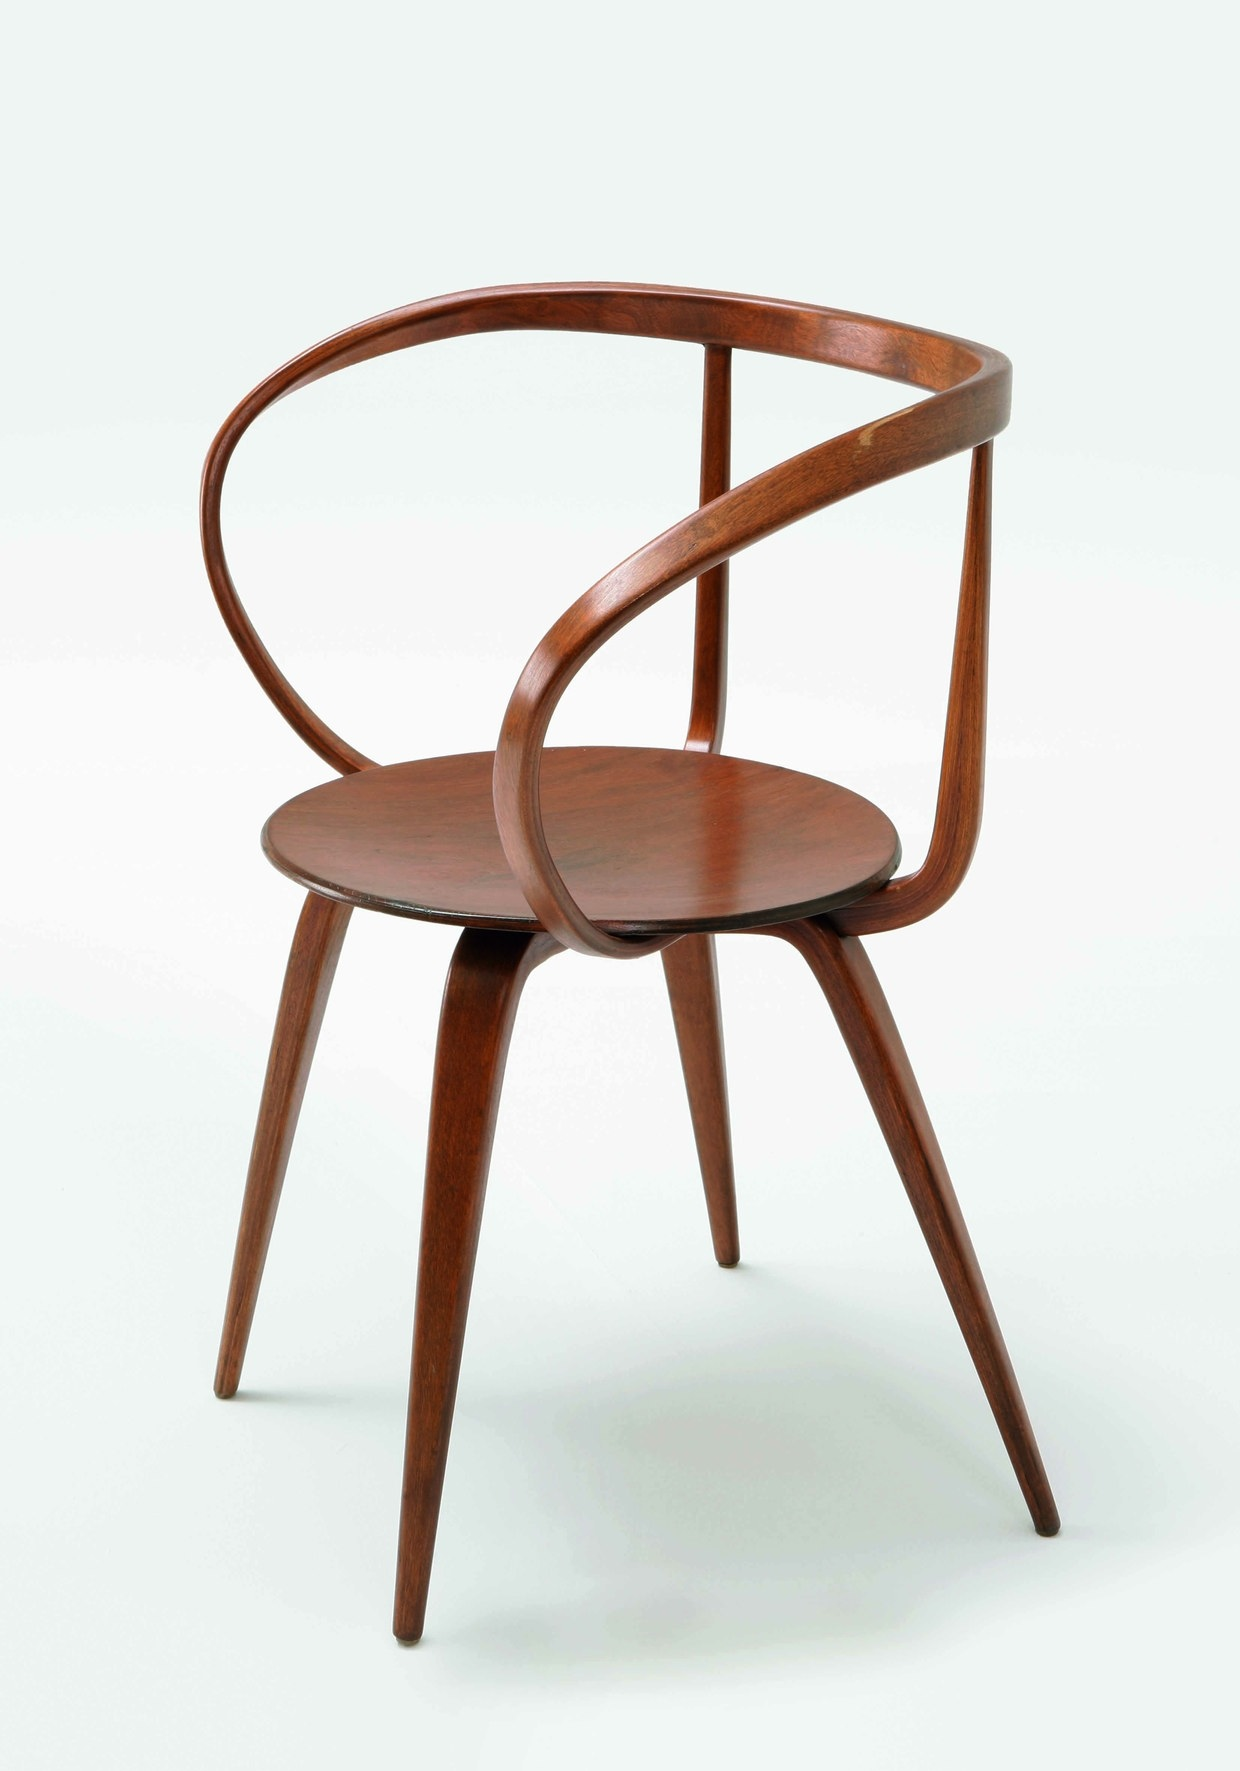 European style office furniture valentineblog net - Cone Chair By Verner Panton Vitra Design Museum For Sale At 1stdibs